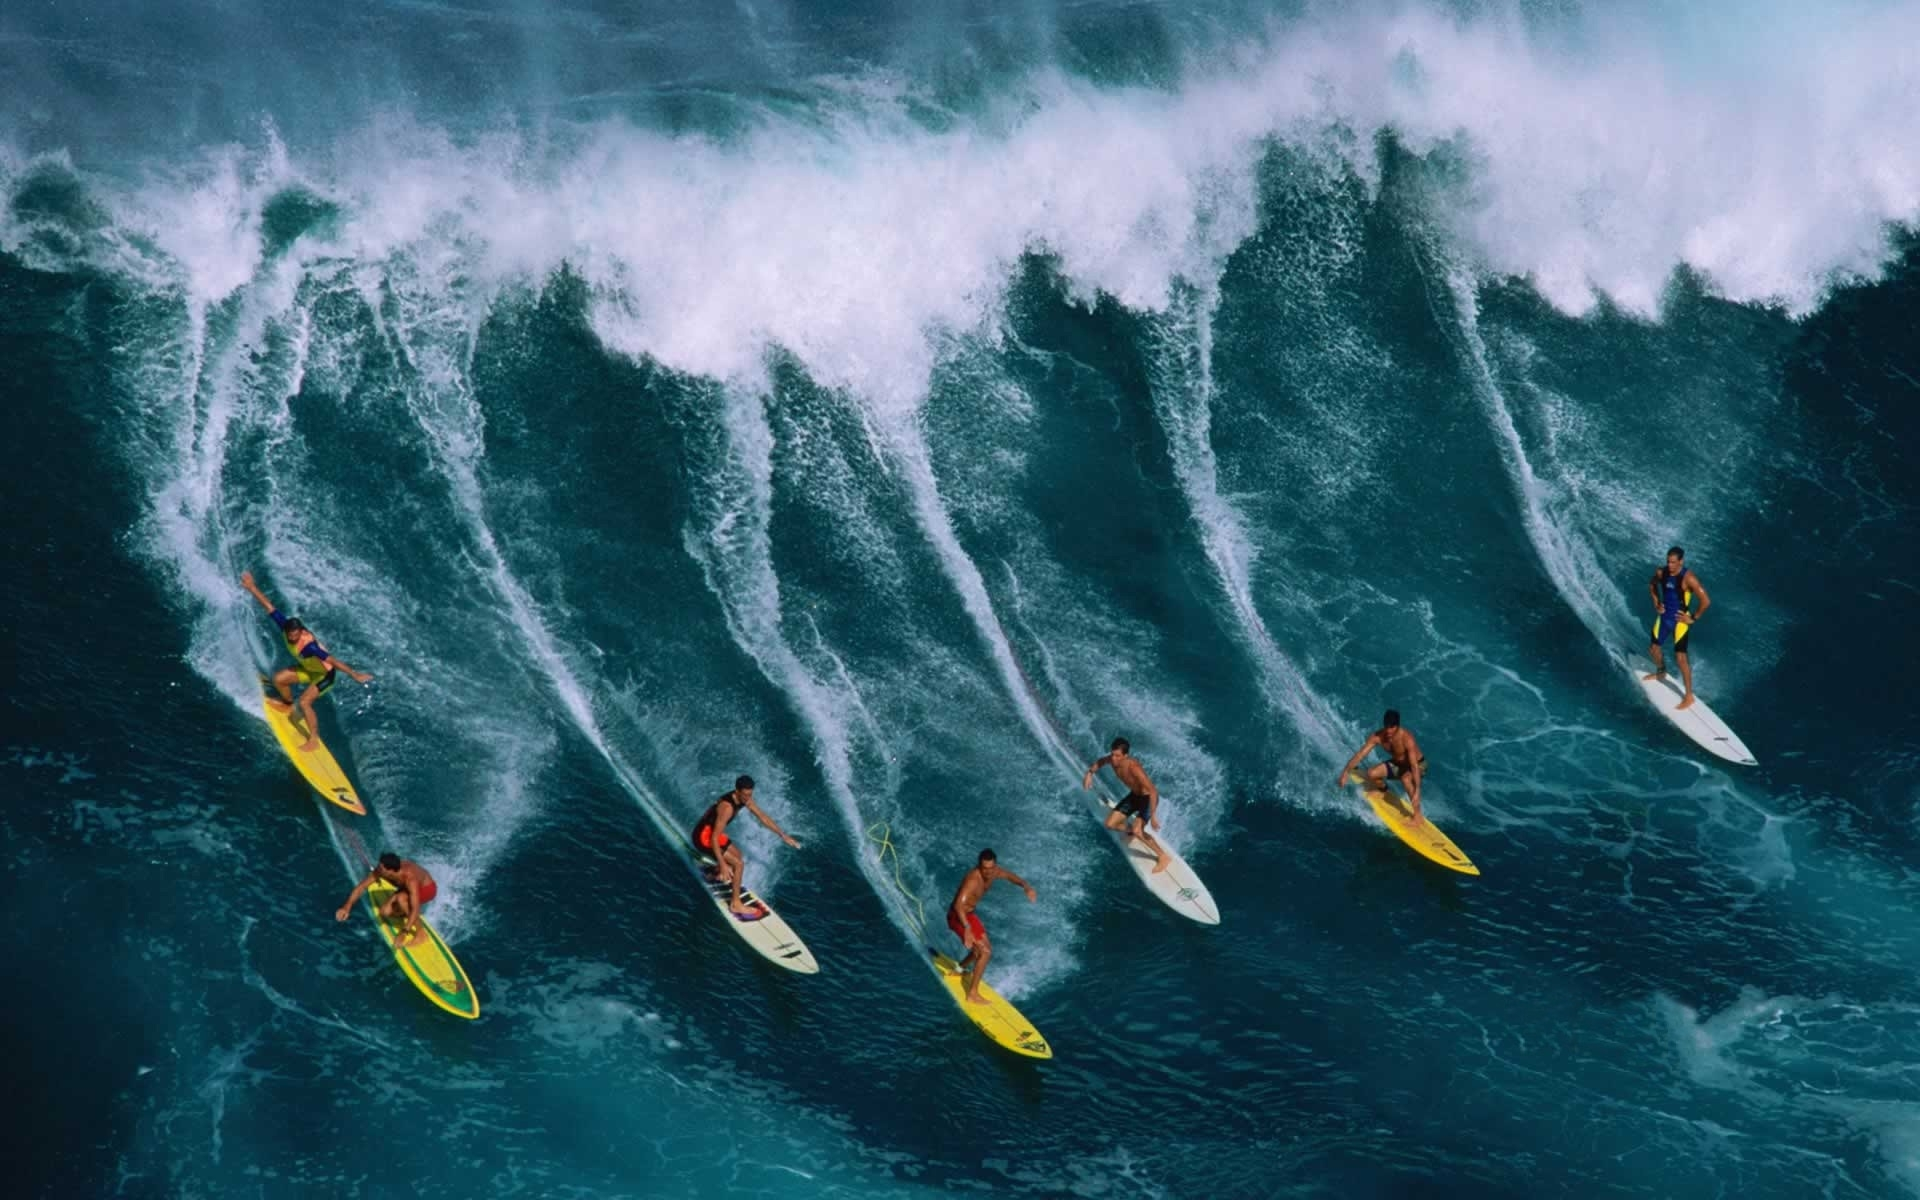 Surfing Sport   Wallpaper High Definition High Quality Widescreen 1920x1200